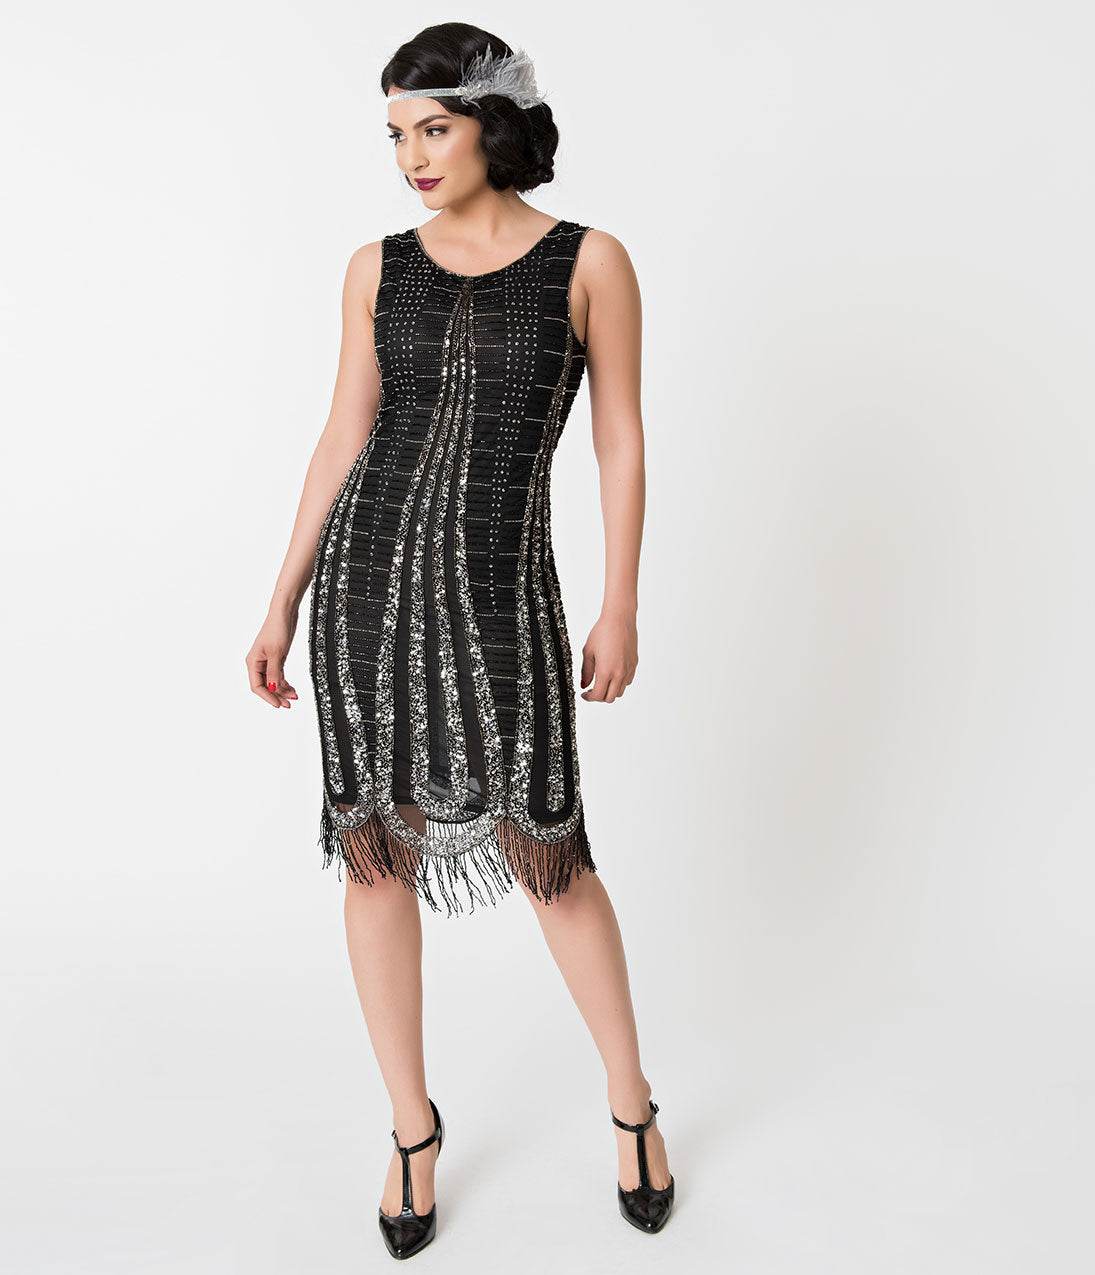 1920s Costumes: Flapper, Great Gatsby, Gangster Girl Unique Vintage Black  Silver Beaded Fringe Romane Cocktail Dress $60.00 AT vintagedancer.com